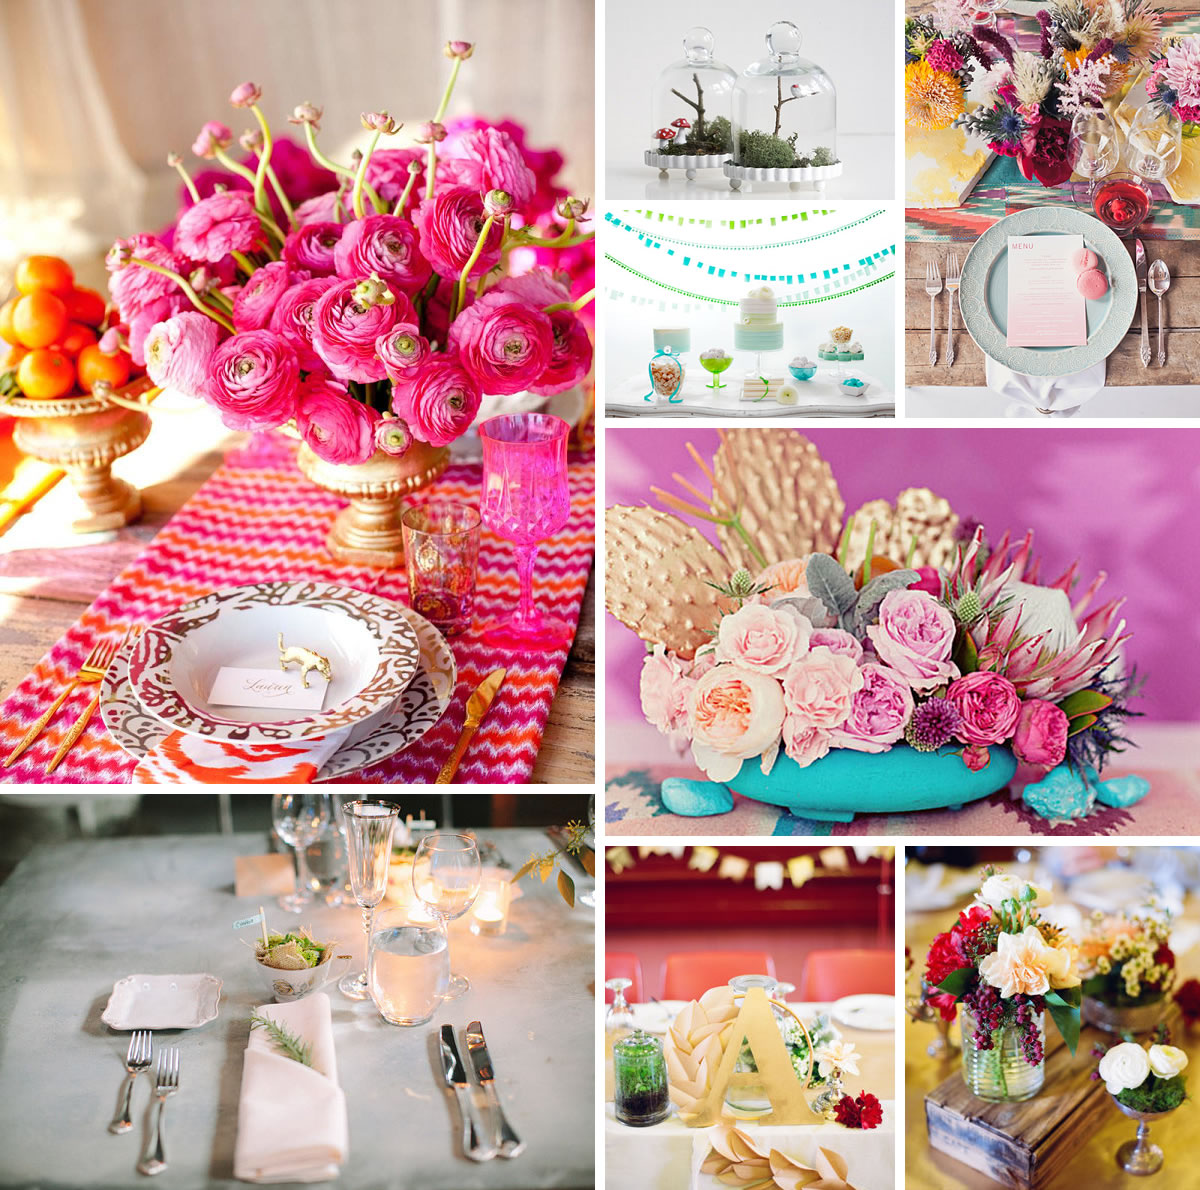 Wedding Table Decorations: 20 Wedding Table Decor Ideas